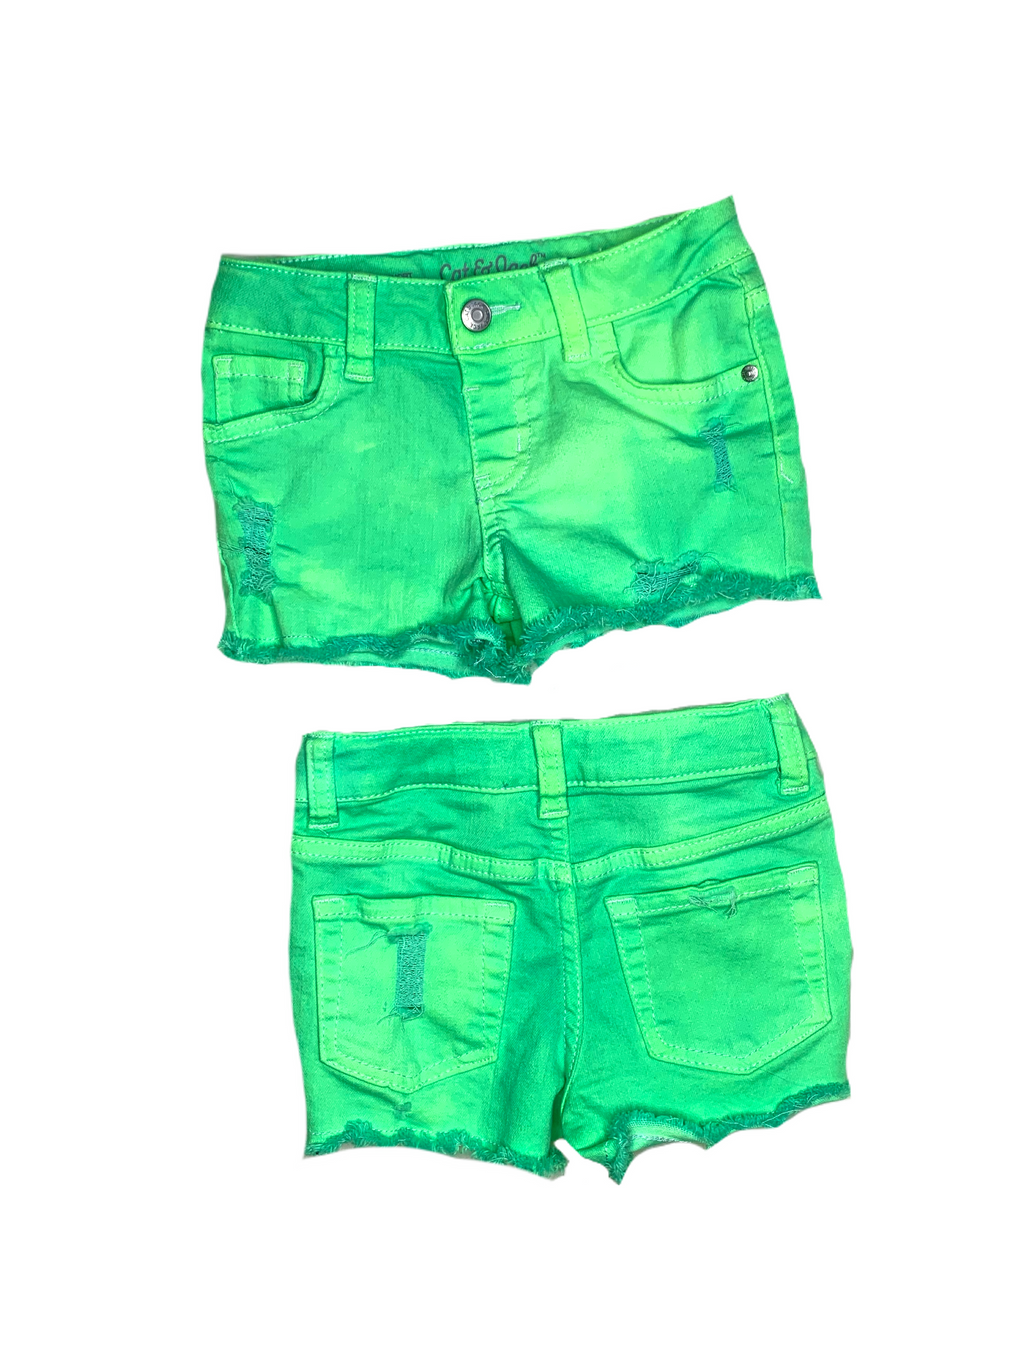 Distressed Neon Green Jean Shorts